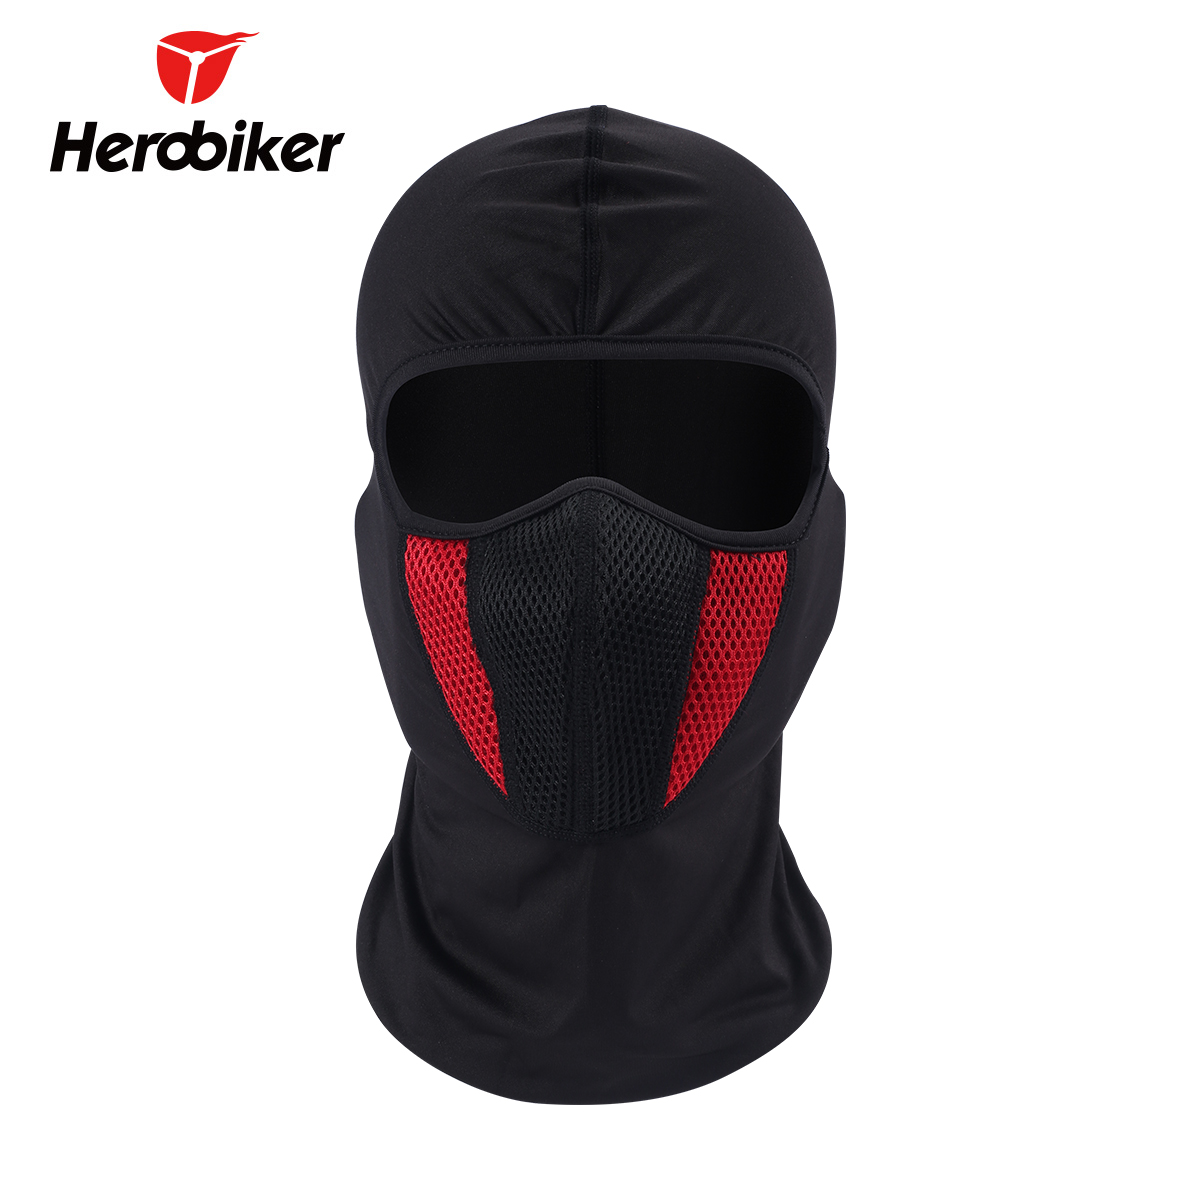 2017 HEROBIKER Men s Motorcycle Face Mask Outdoor Pro Street Windproof Dustproof Motorcycle Riding Neck Face Mask Moto Balaclava